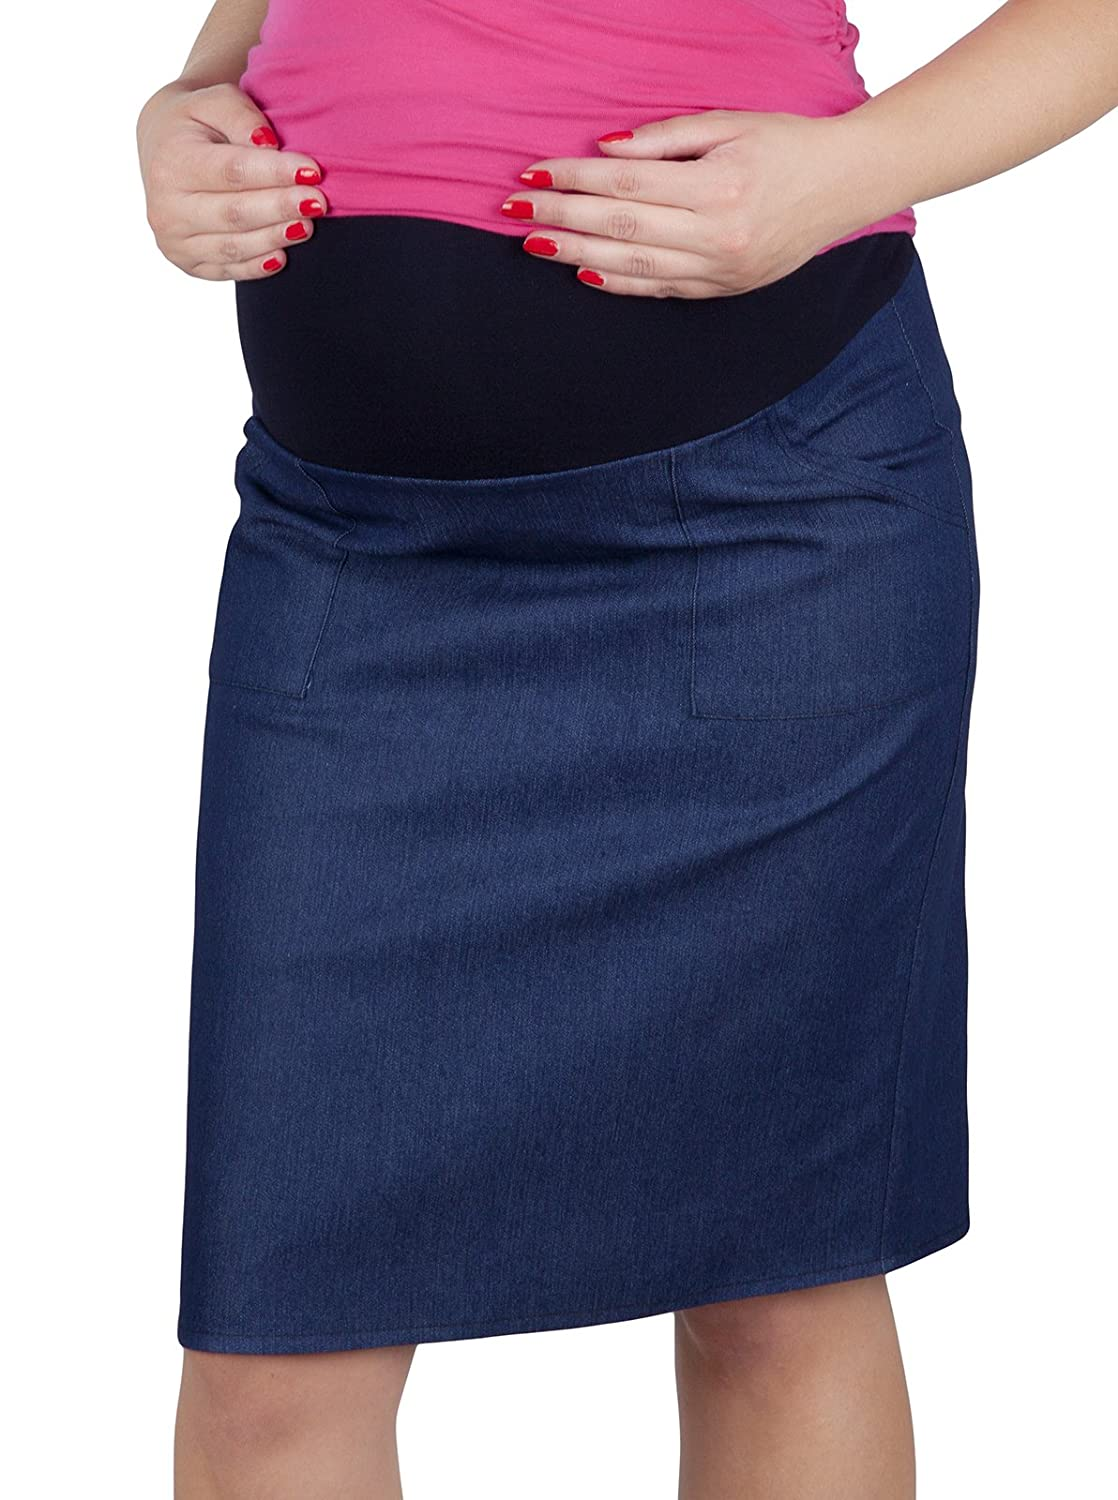 Mija – Maternity pregnancy Denim skirt with soft jersey panel 3047